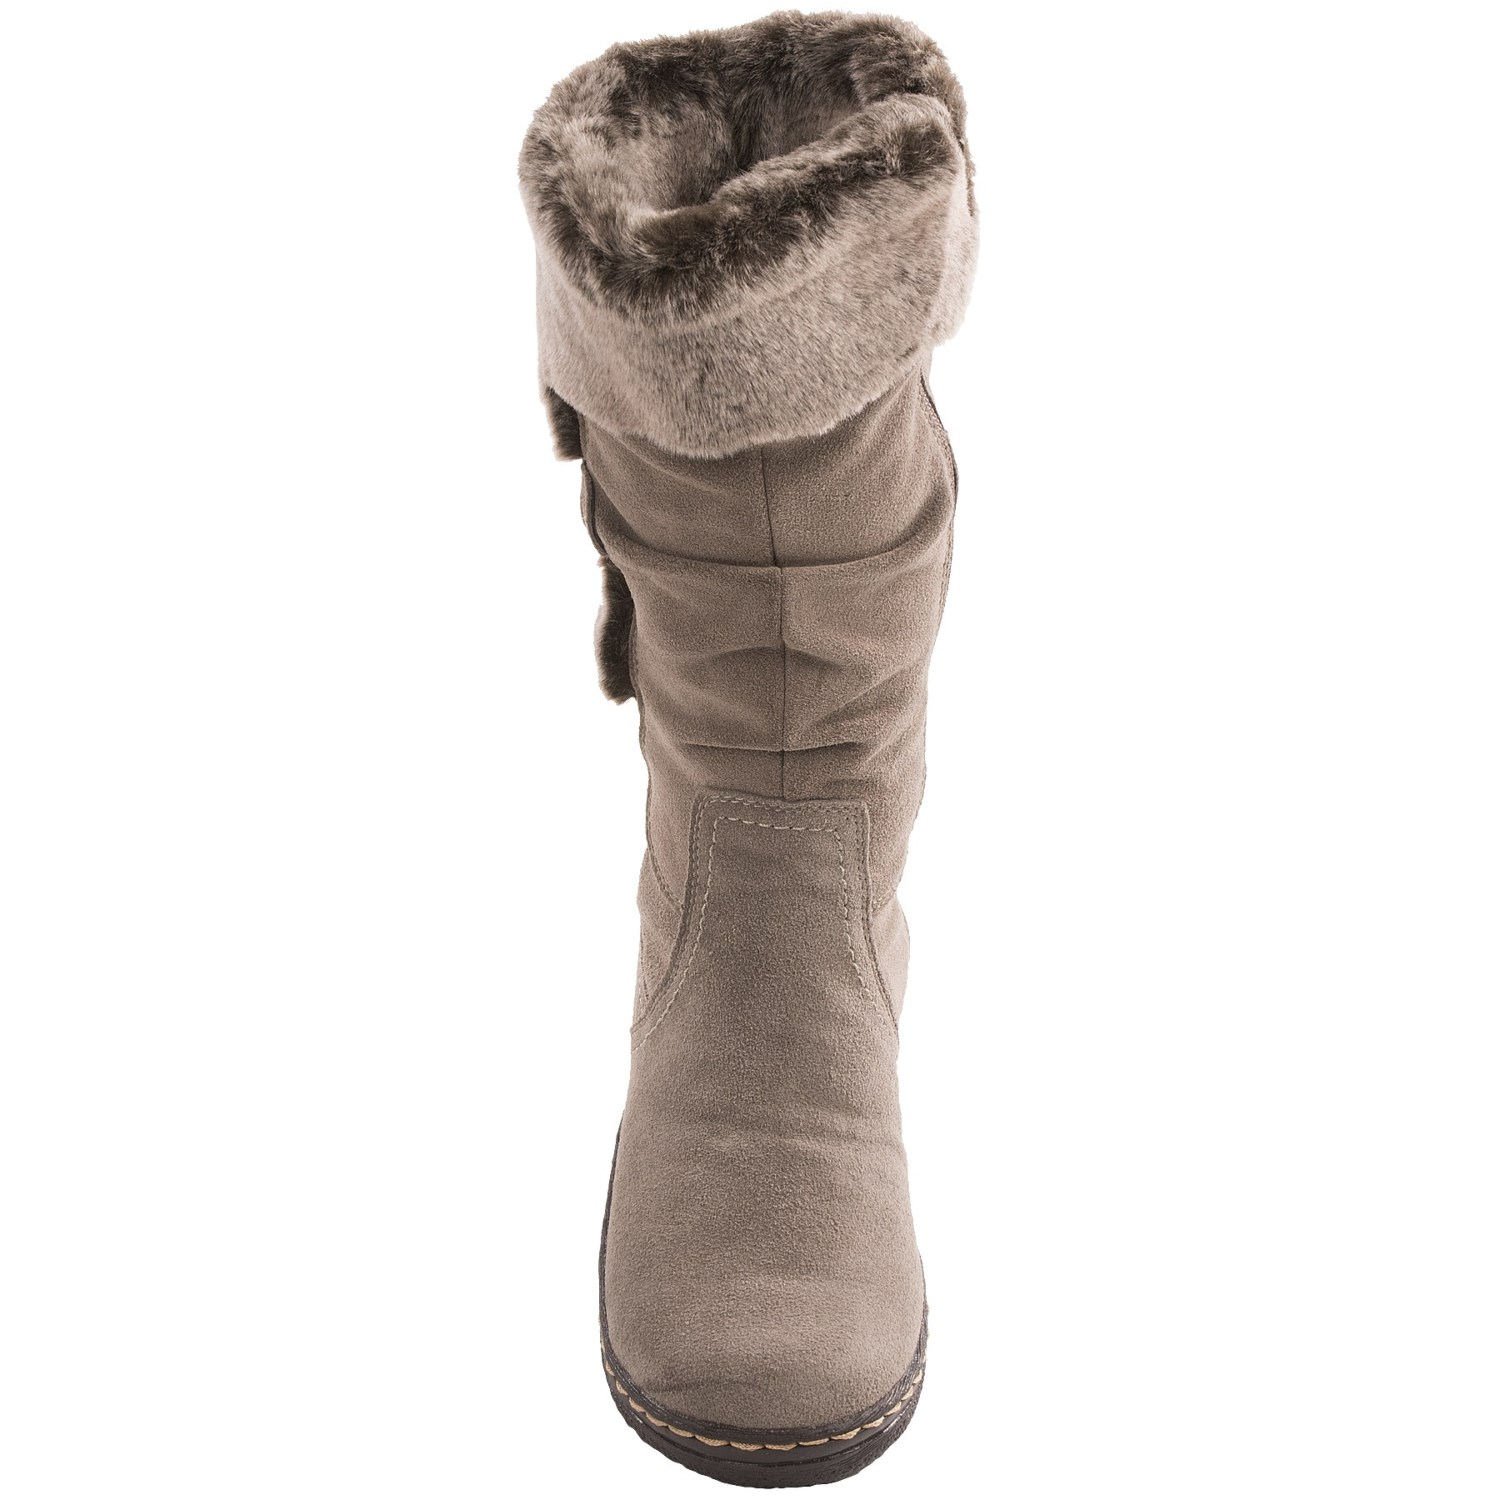 Blondo Brittany Boots For Women 7408g Save 31